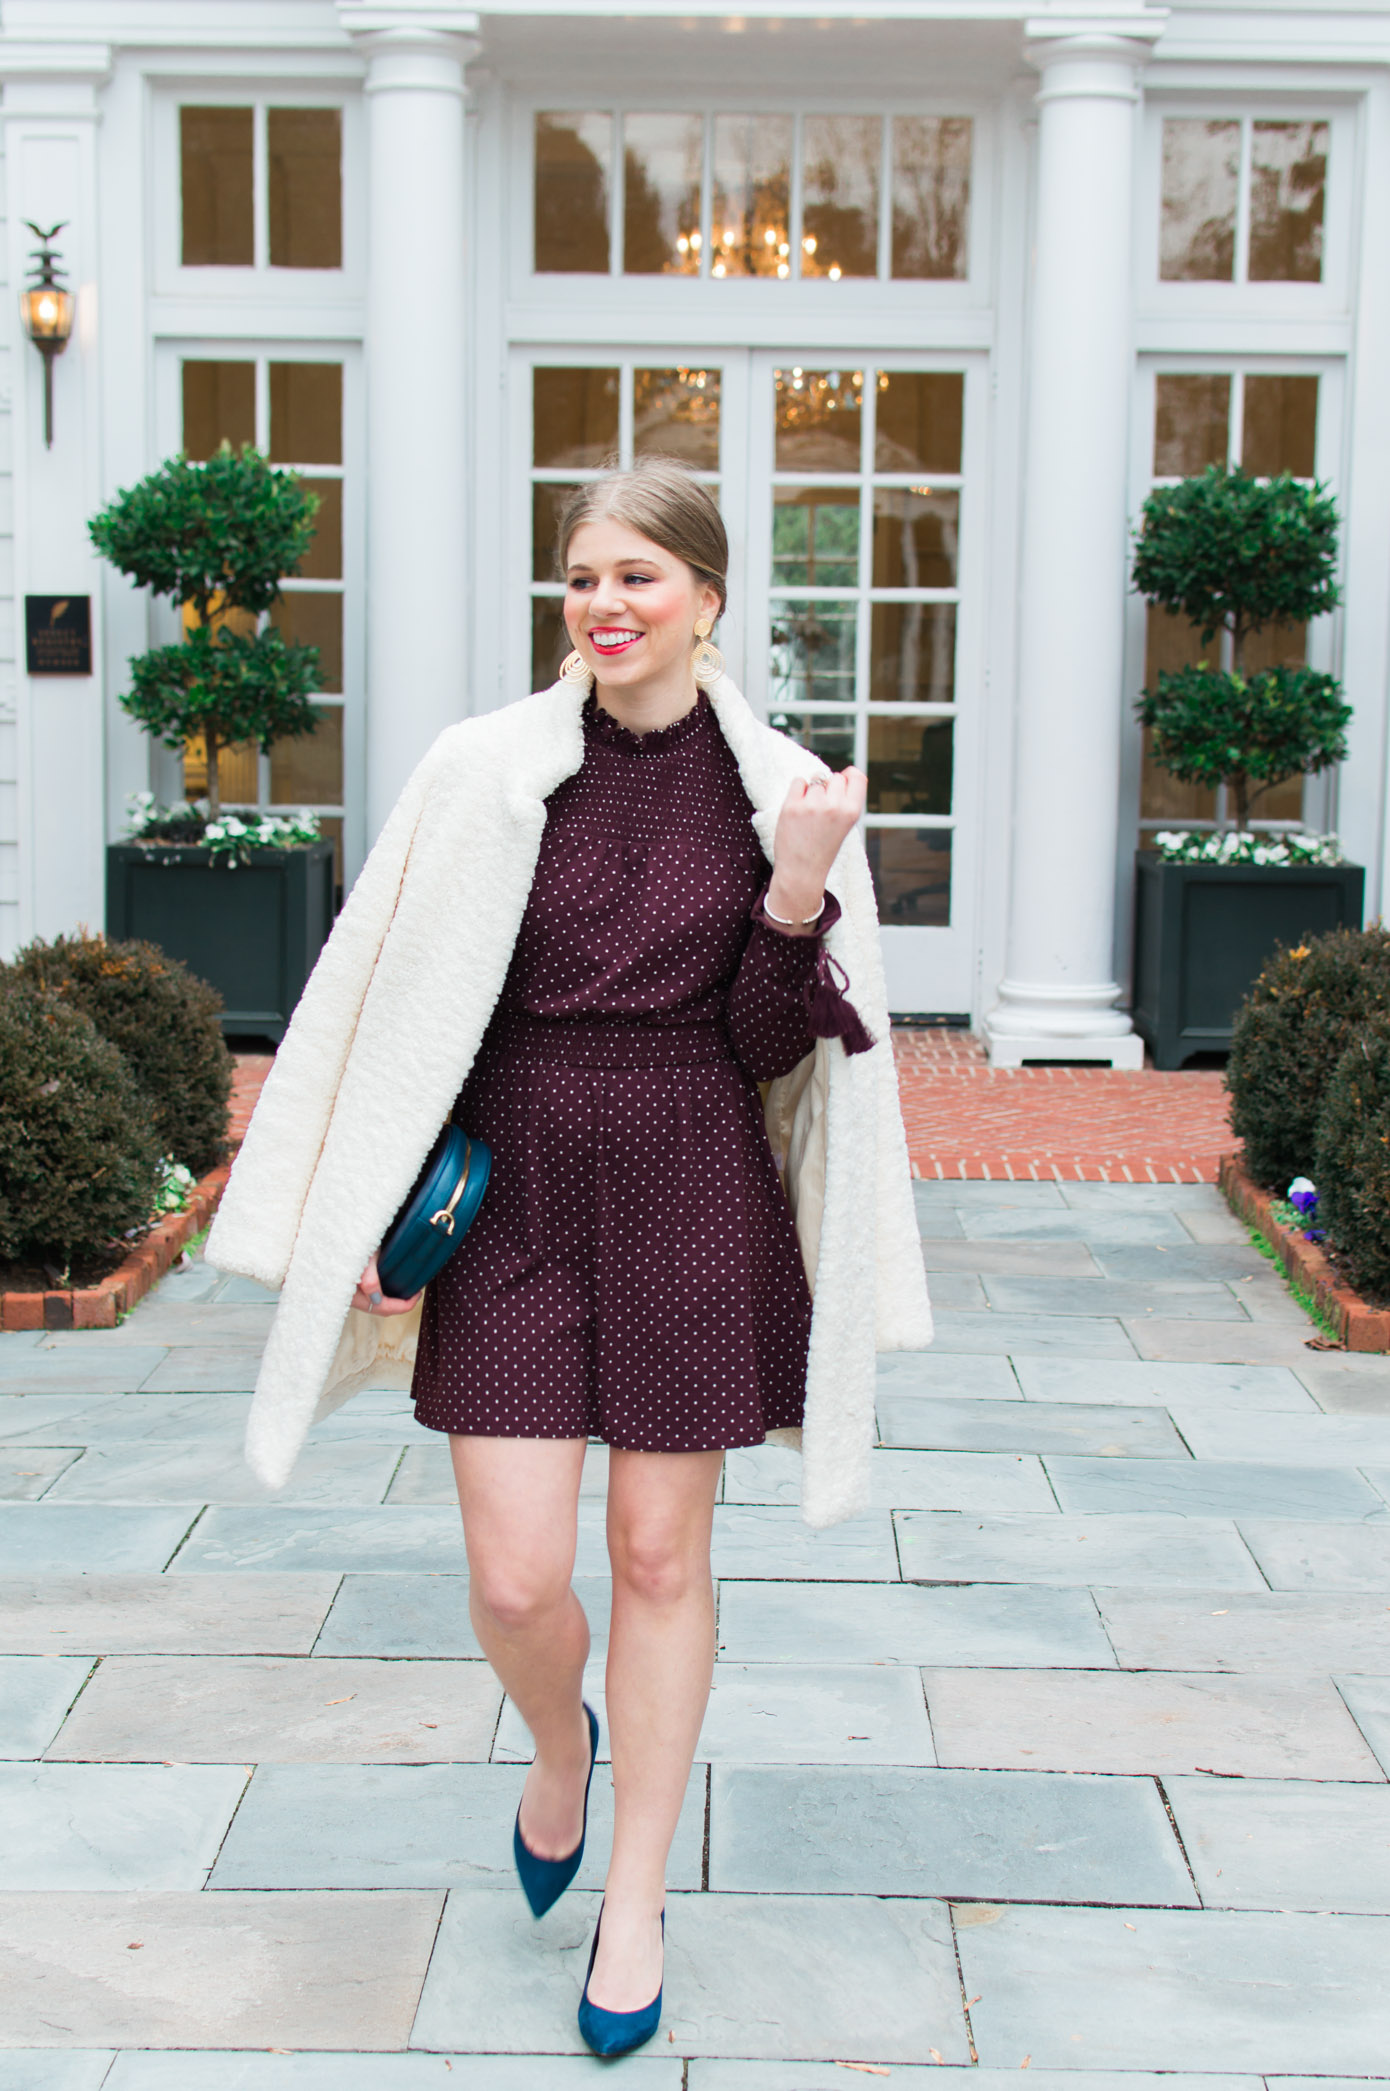 Valentine's Day Date Outfit Idea | Chic Winter Date Night Look | Louella Reese Life & Style Blog